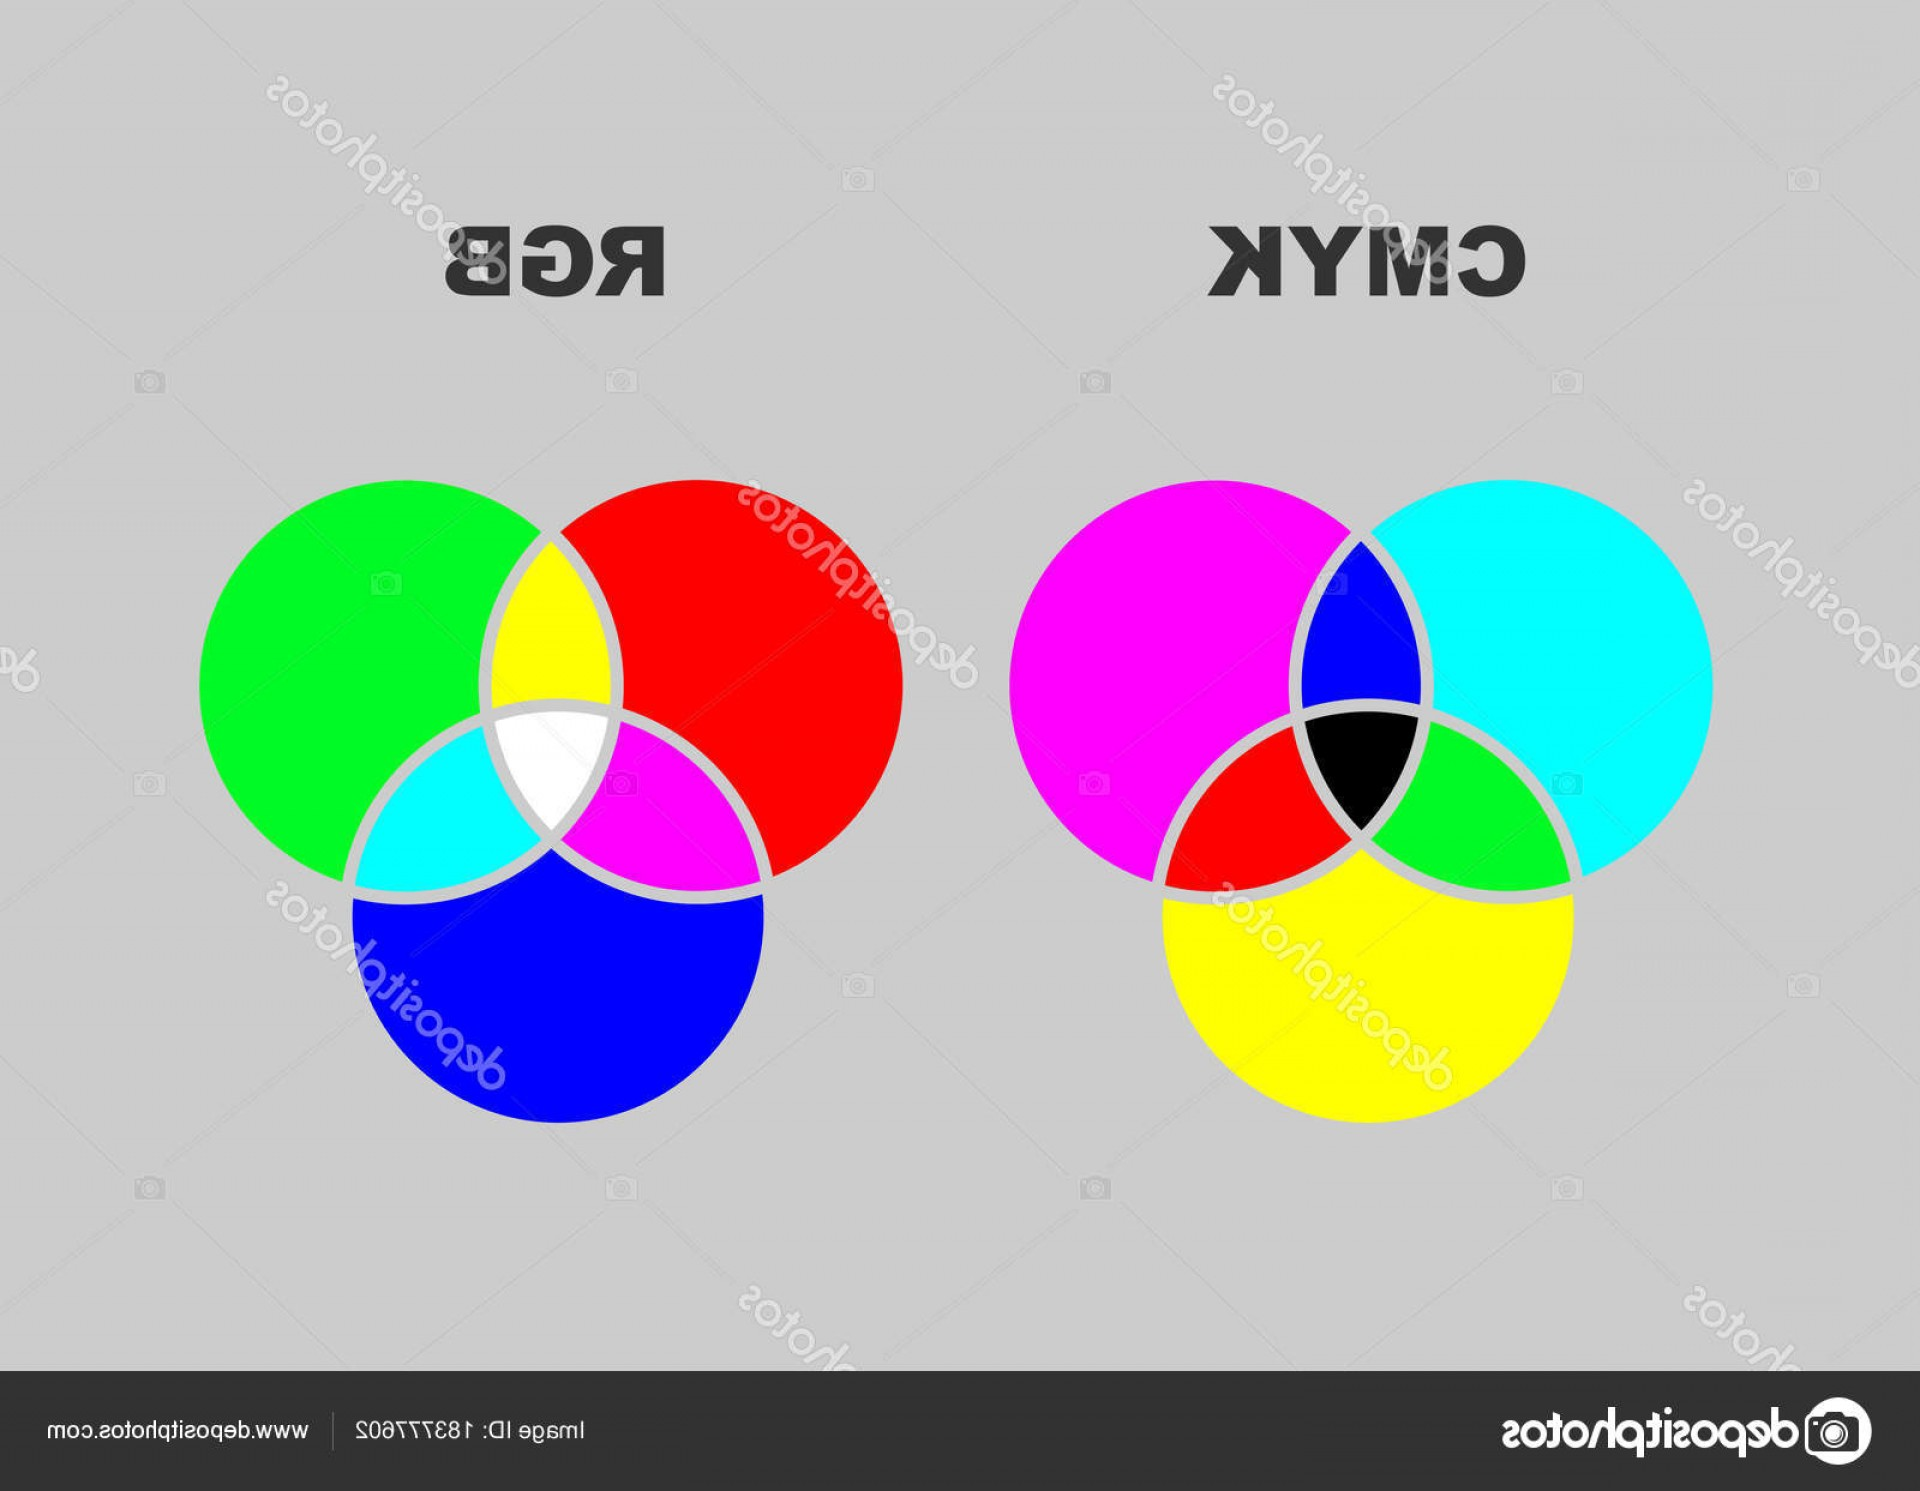 Color CMYK Chart Vector Free: Stock Illustration Vector Chart Explaining Difference Between